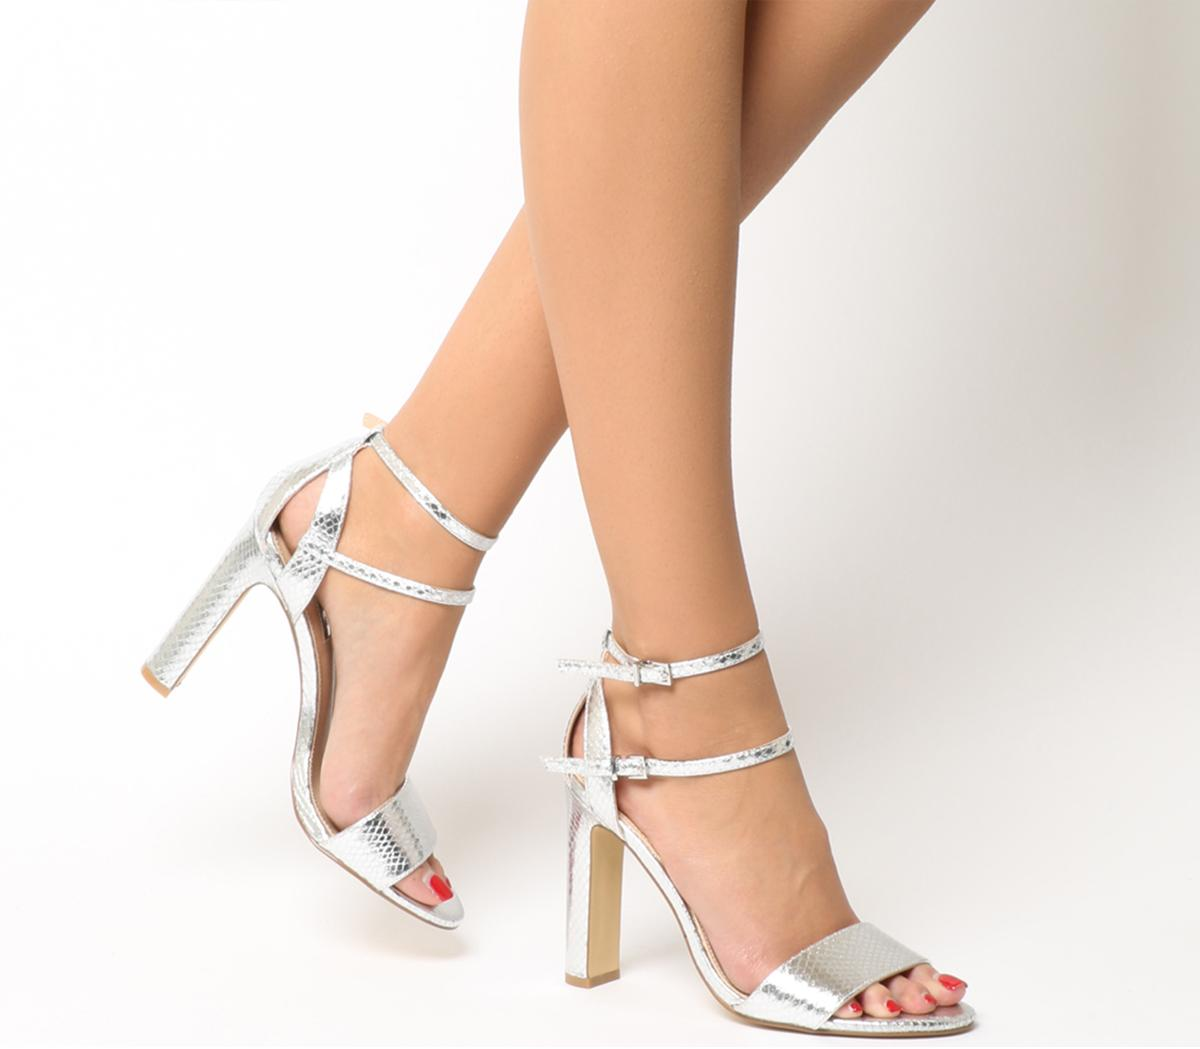 Hypnotize Heels With Ankle Straps